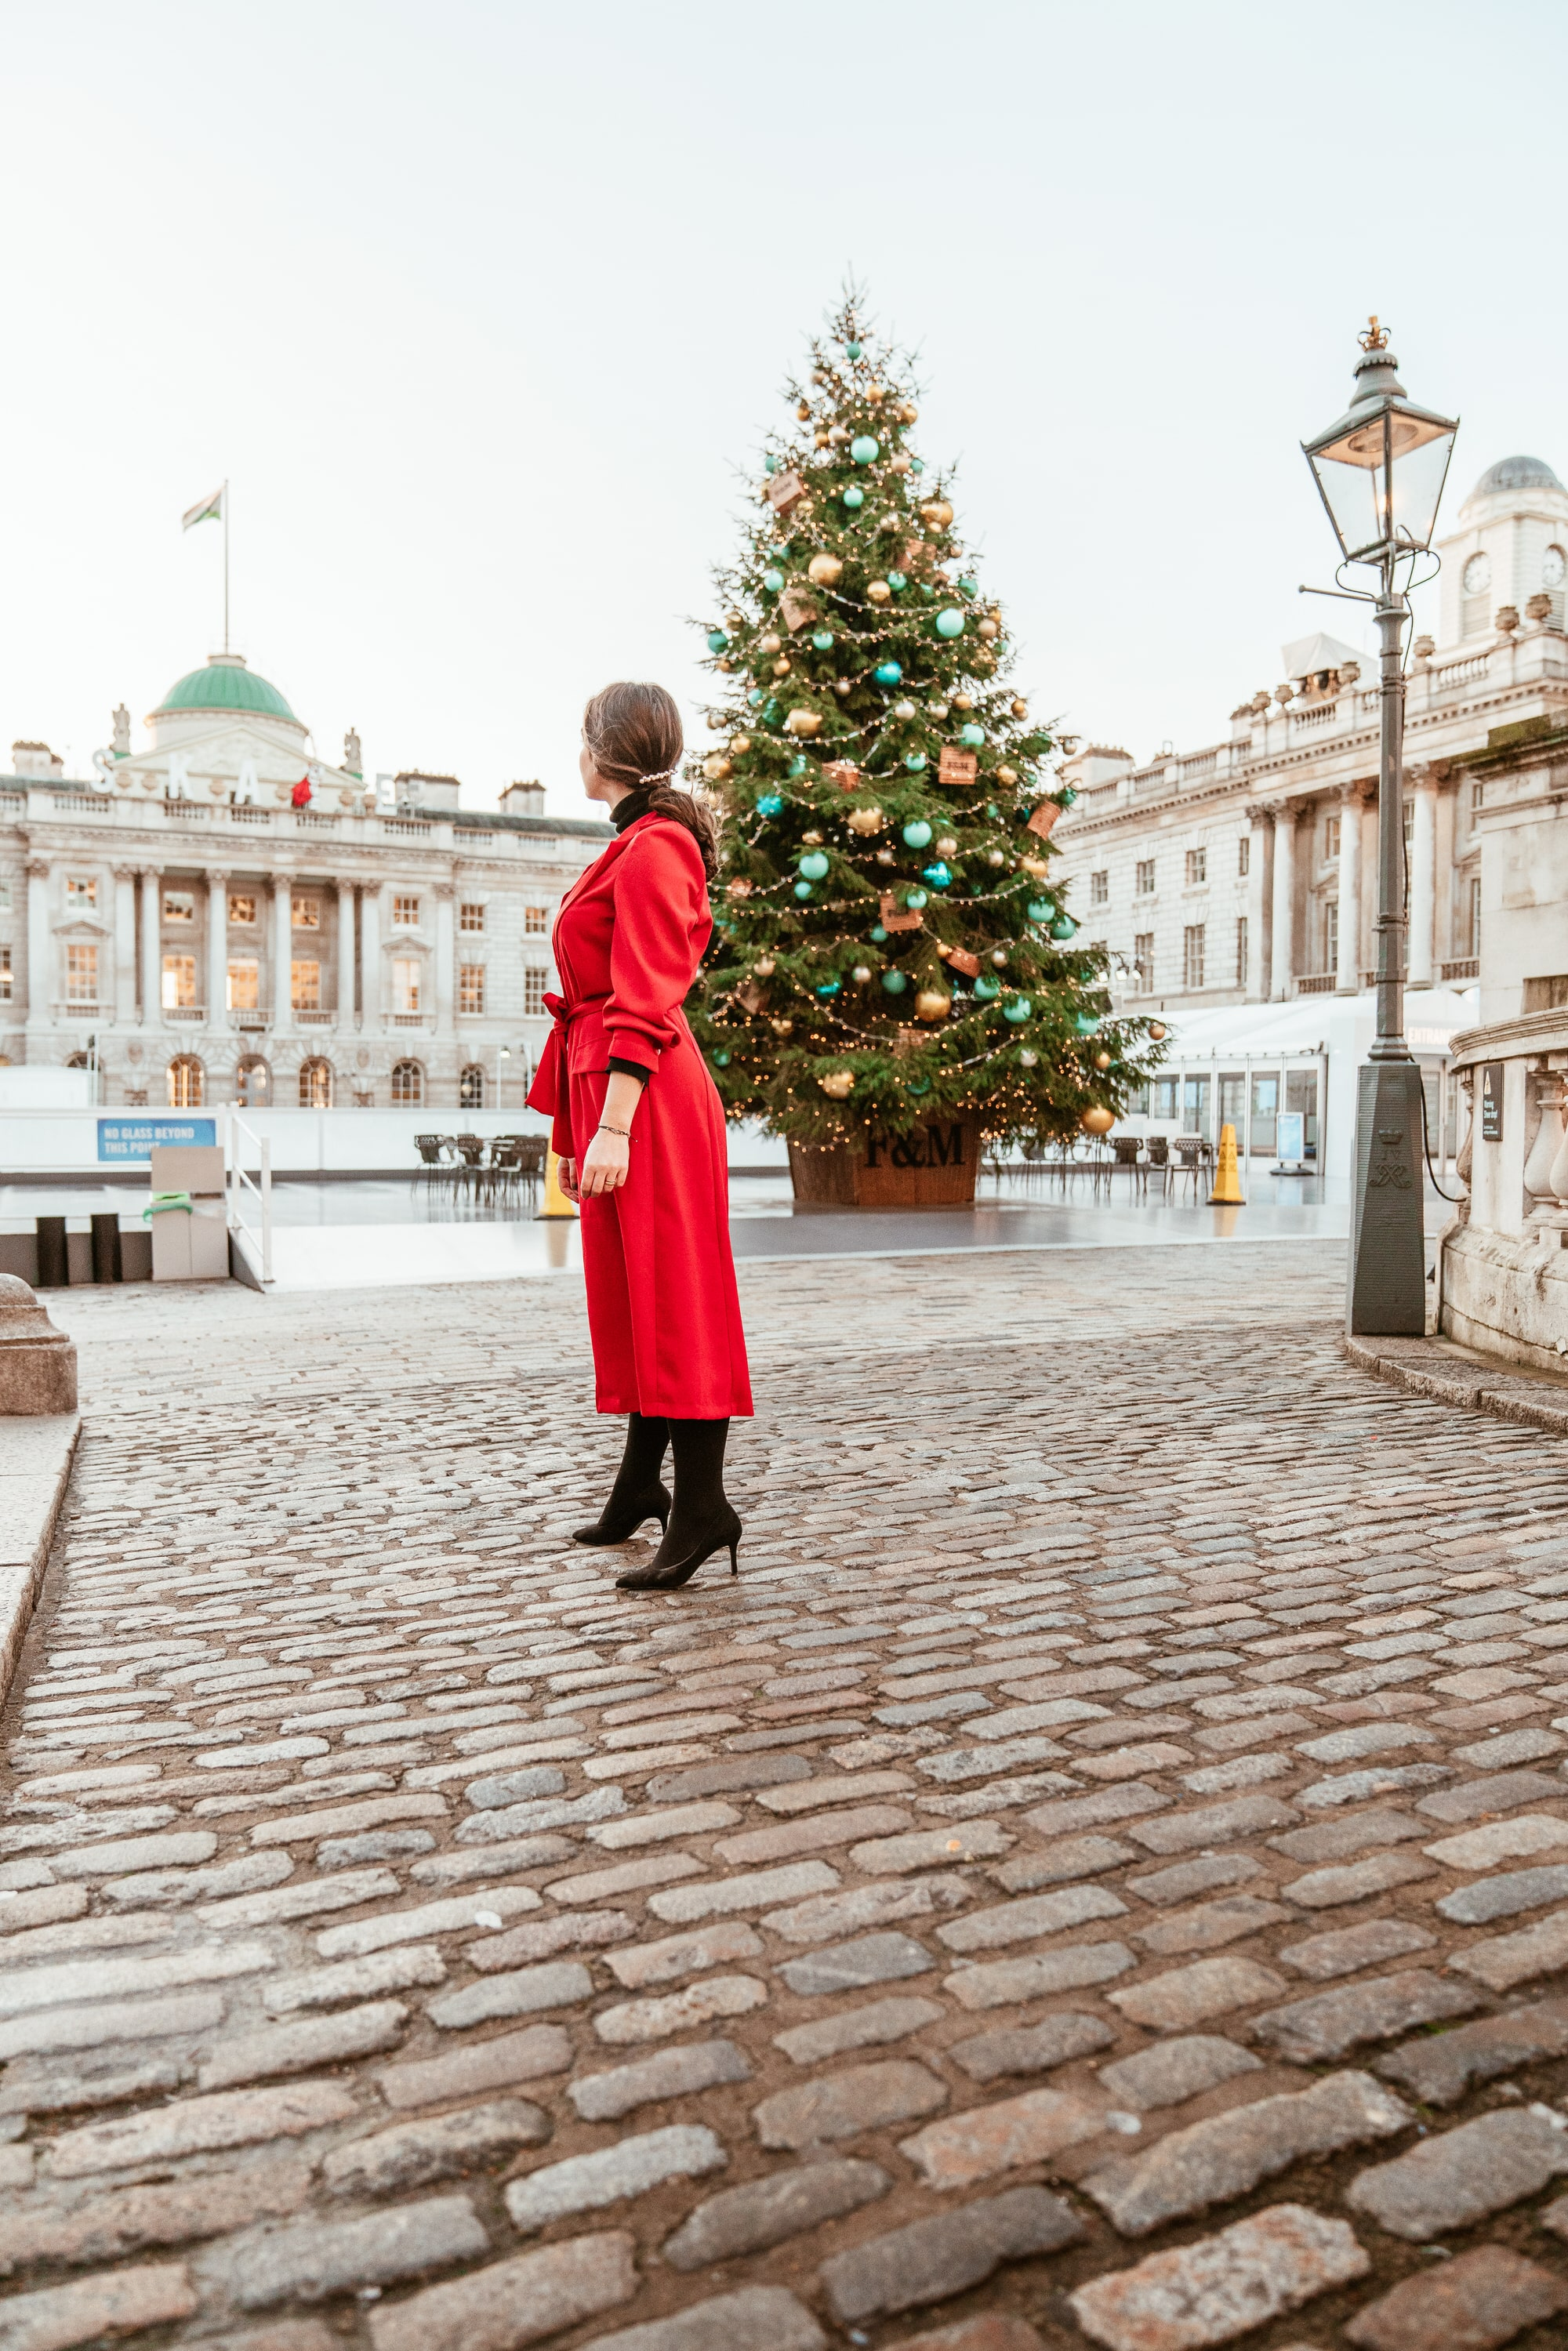 Arara Pintada wears Sienna Red Dress while spending her First Christmas in London